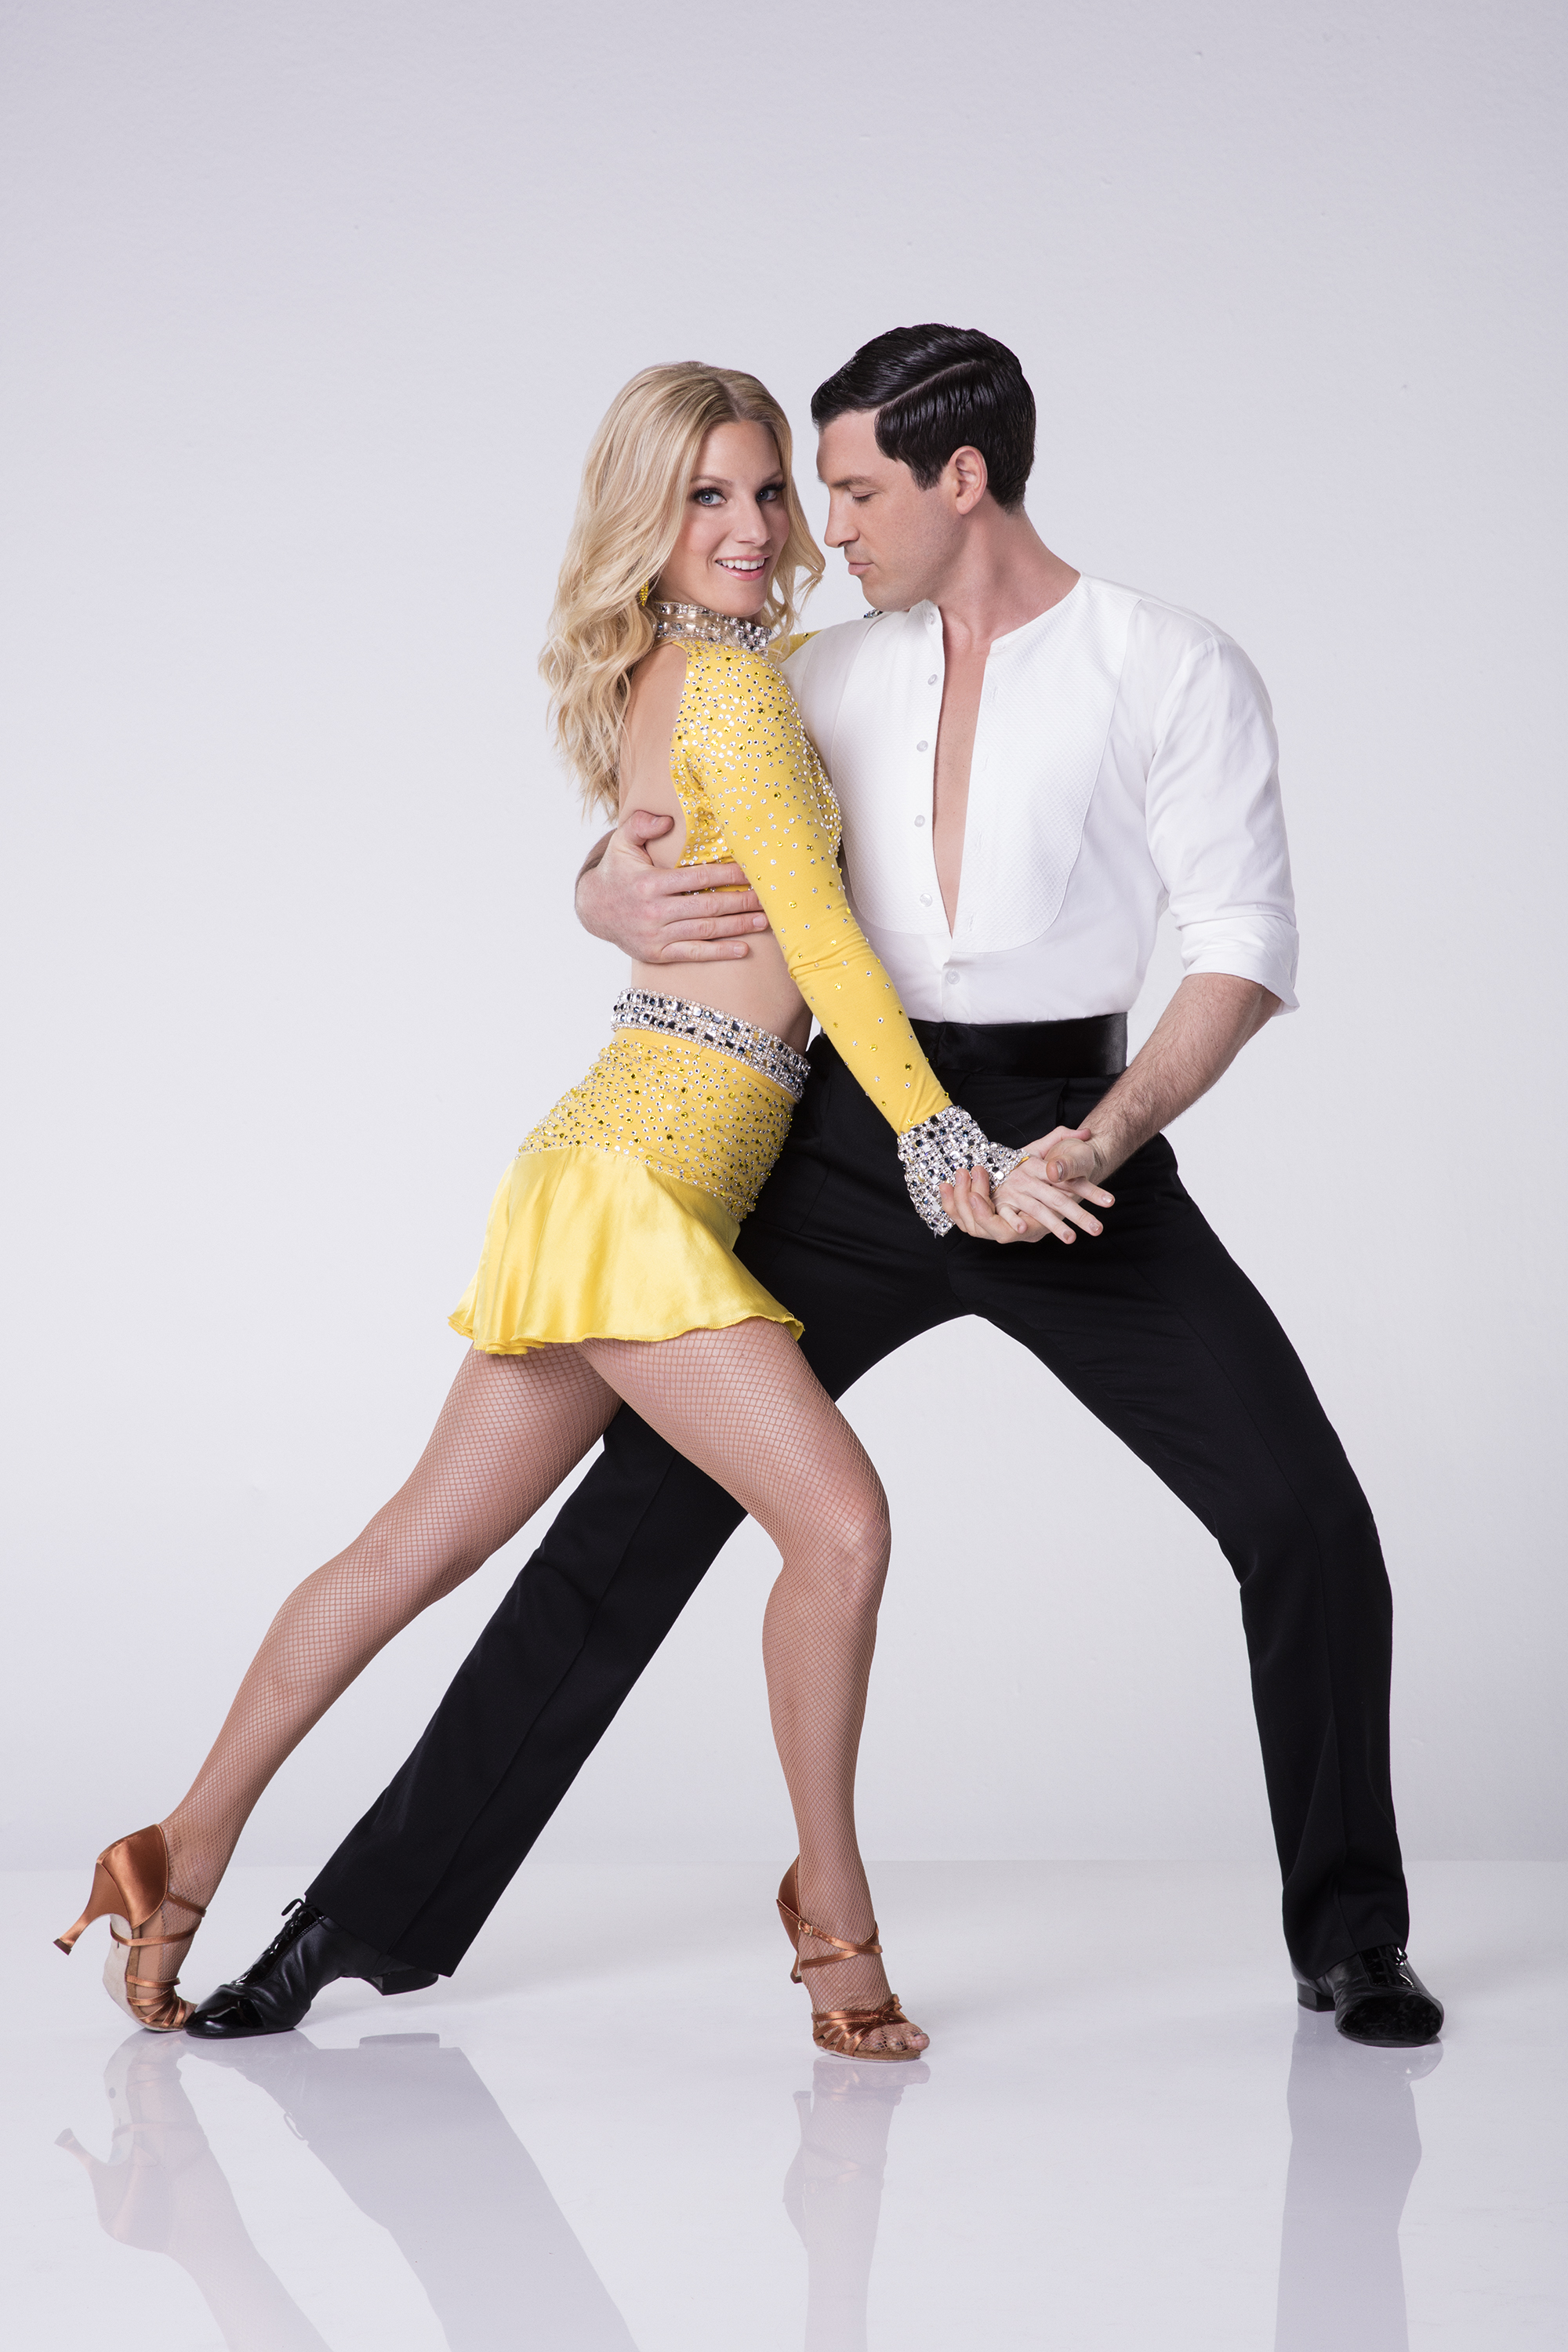 dancing with the stars dancers dating